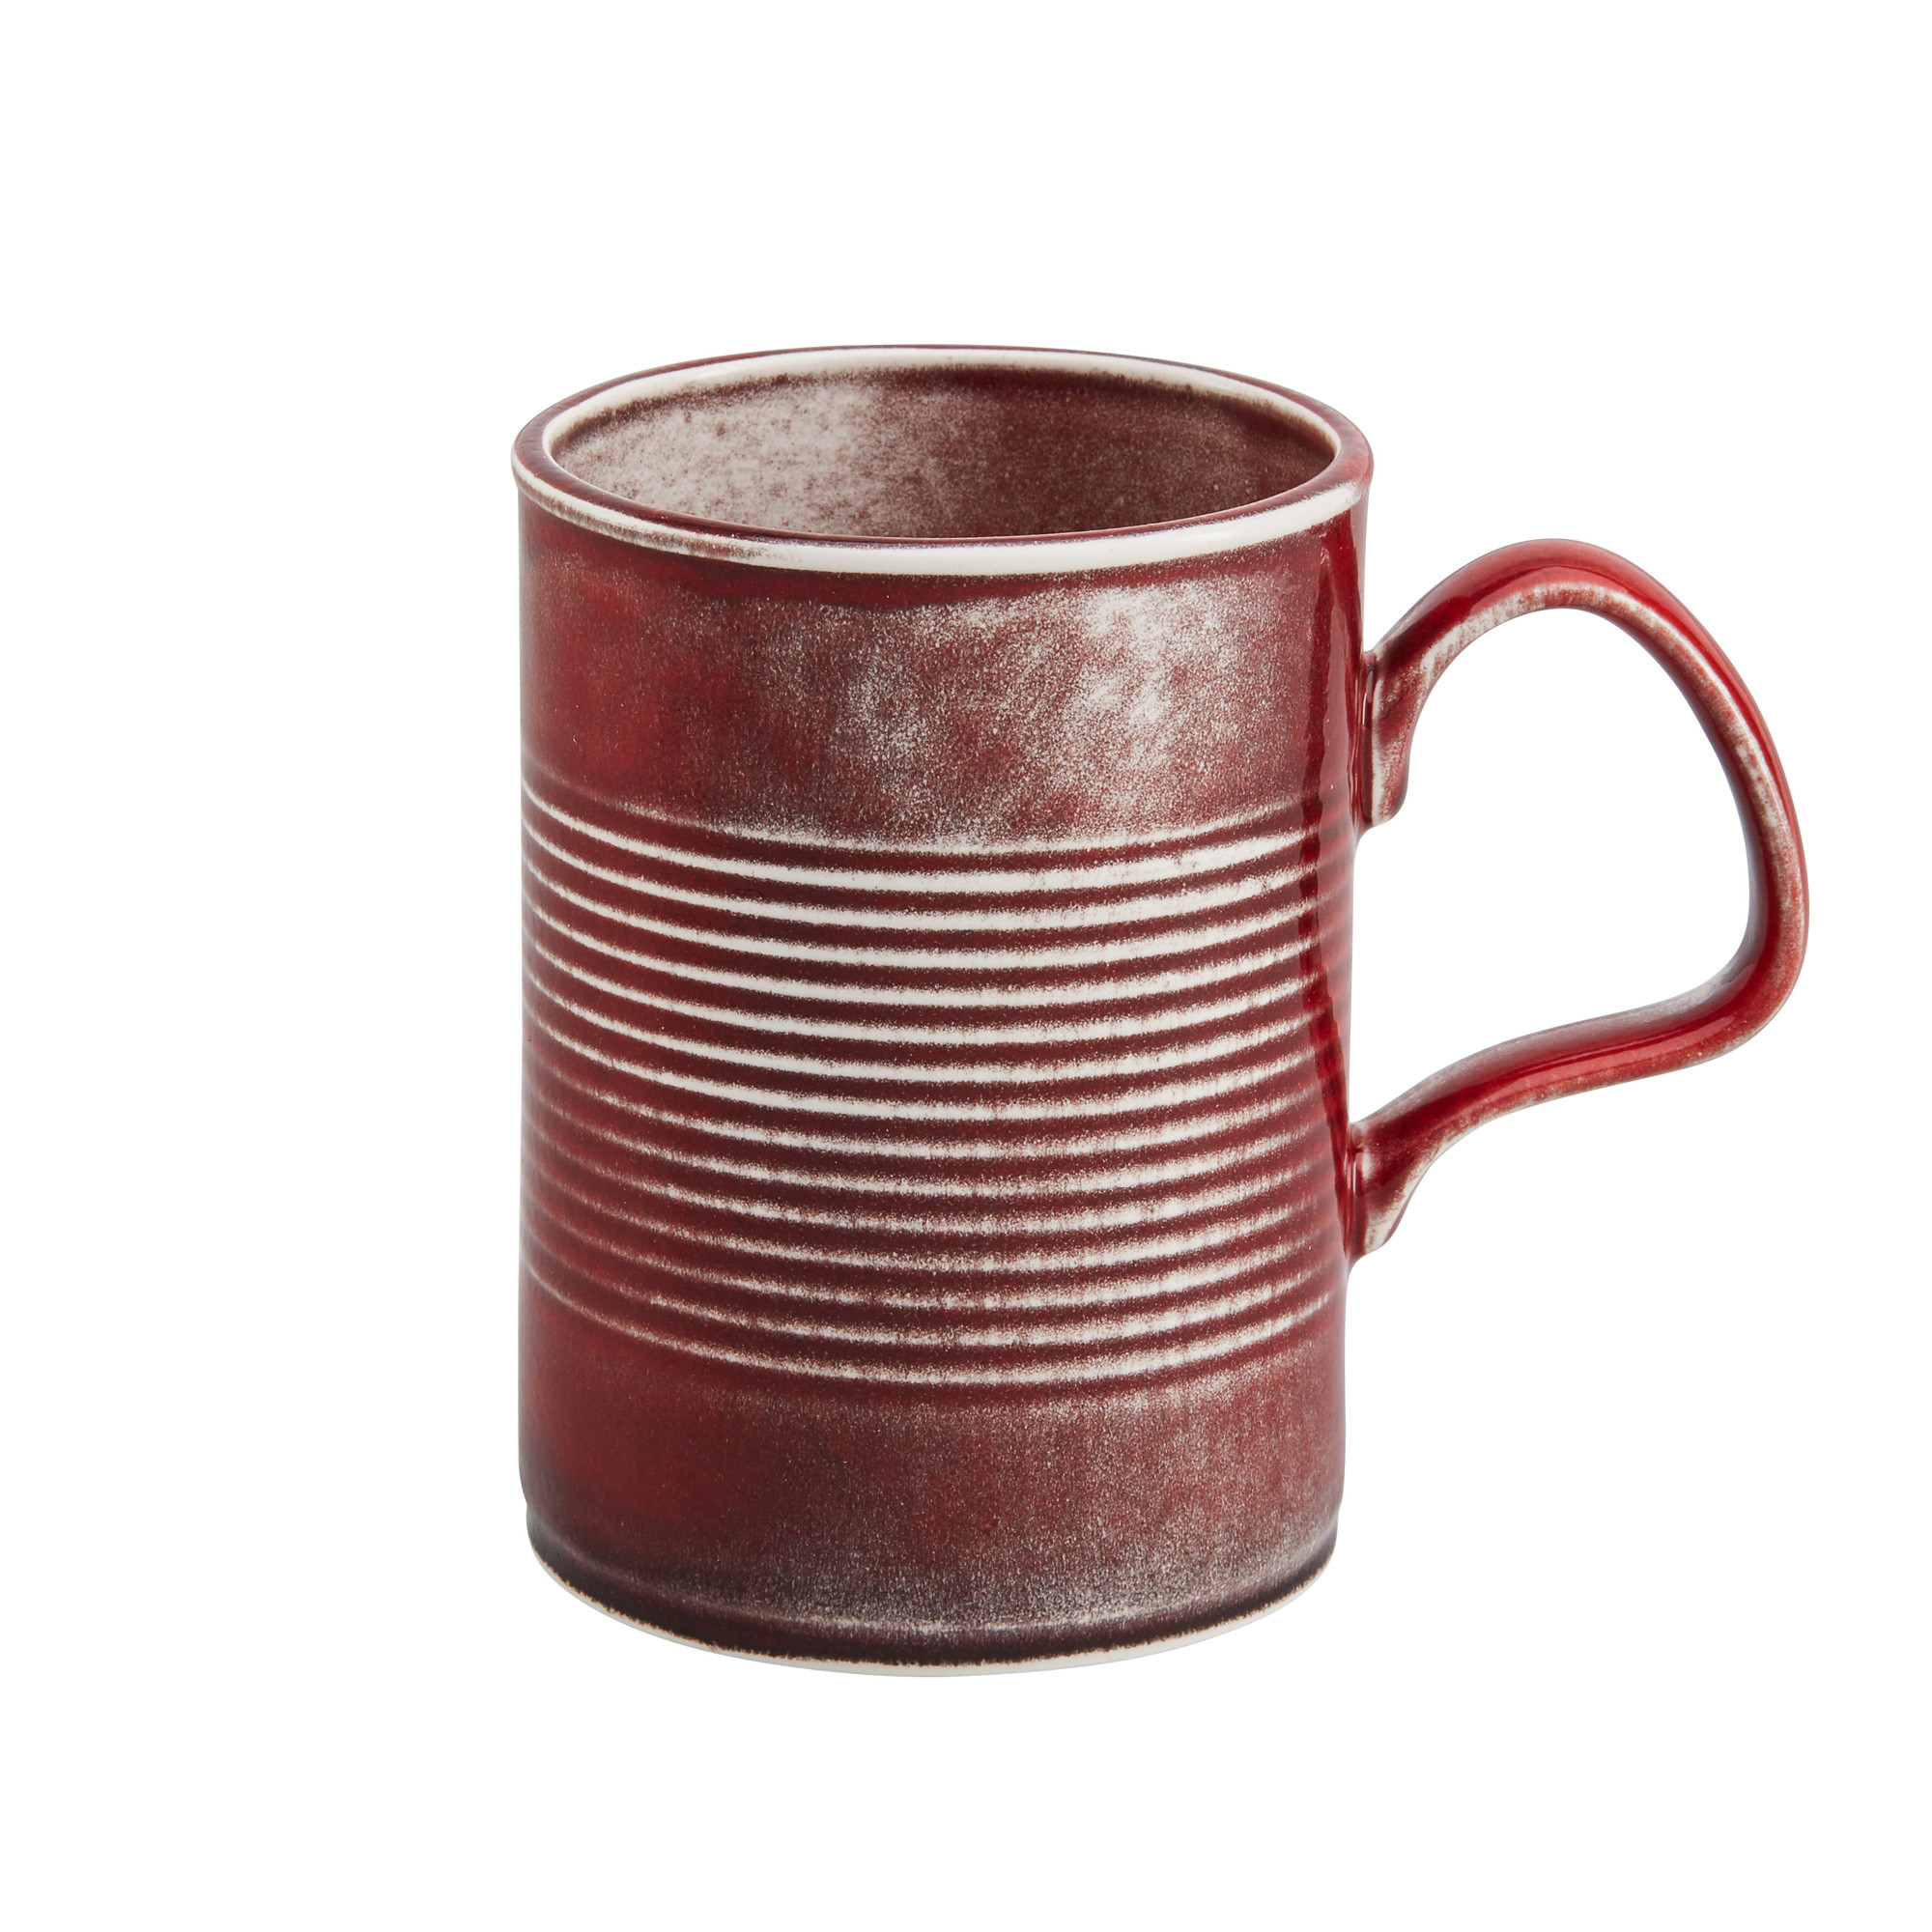 "<span class=""link fancybox-details-link""><a href=""/artists/37-stolen-form/works/1014-stolen-form-tin-can-mug-large-red-2017/"">View Detail Page</a></span><div class=""artist""><strong>Stolen Form</strong></div> <div class=""title""><em>Tin Can Mug - Large - Red</em>, 2017</div> <div class=""medium"">Ceramic</div> <div class=""dimensions"">10.5 x 7.5 x 12 cm</div> <div class=""edition_details""></div><div class=""copyright_line"">Copyright The Artist</div>"